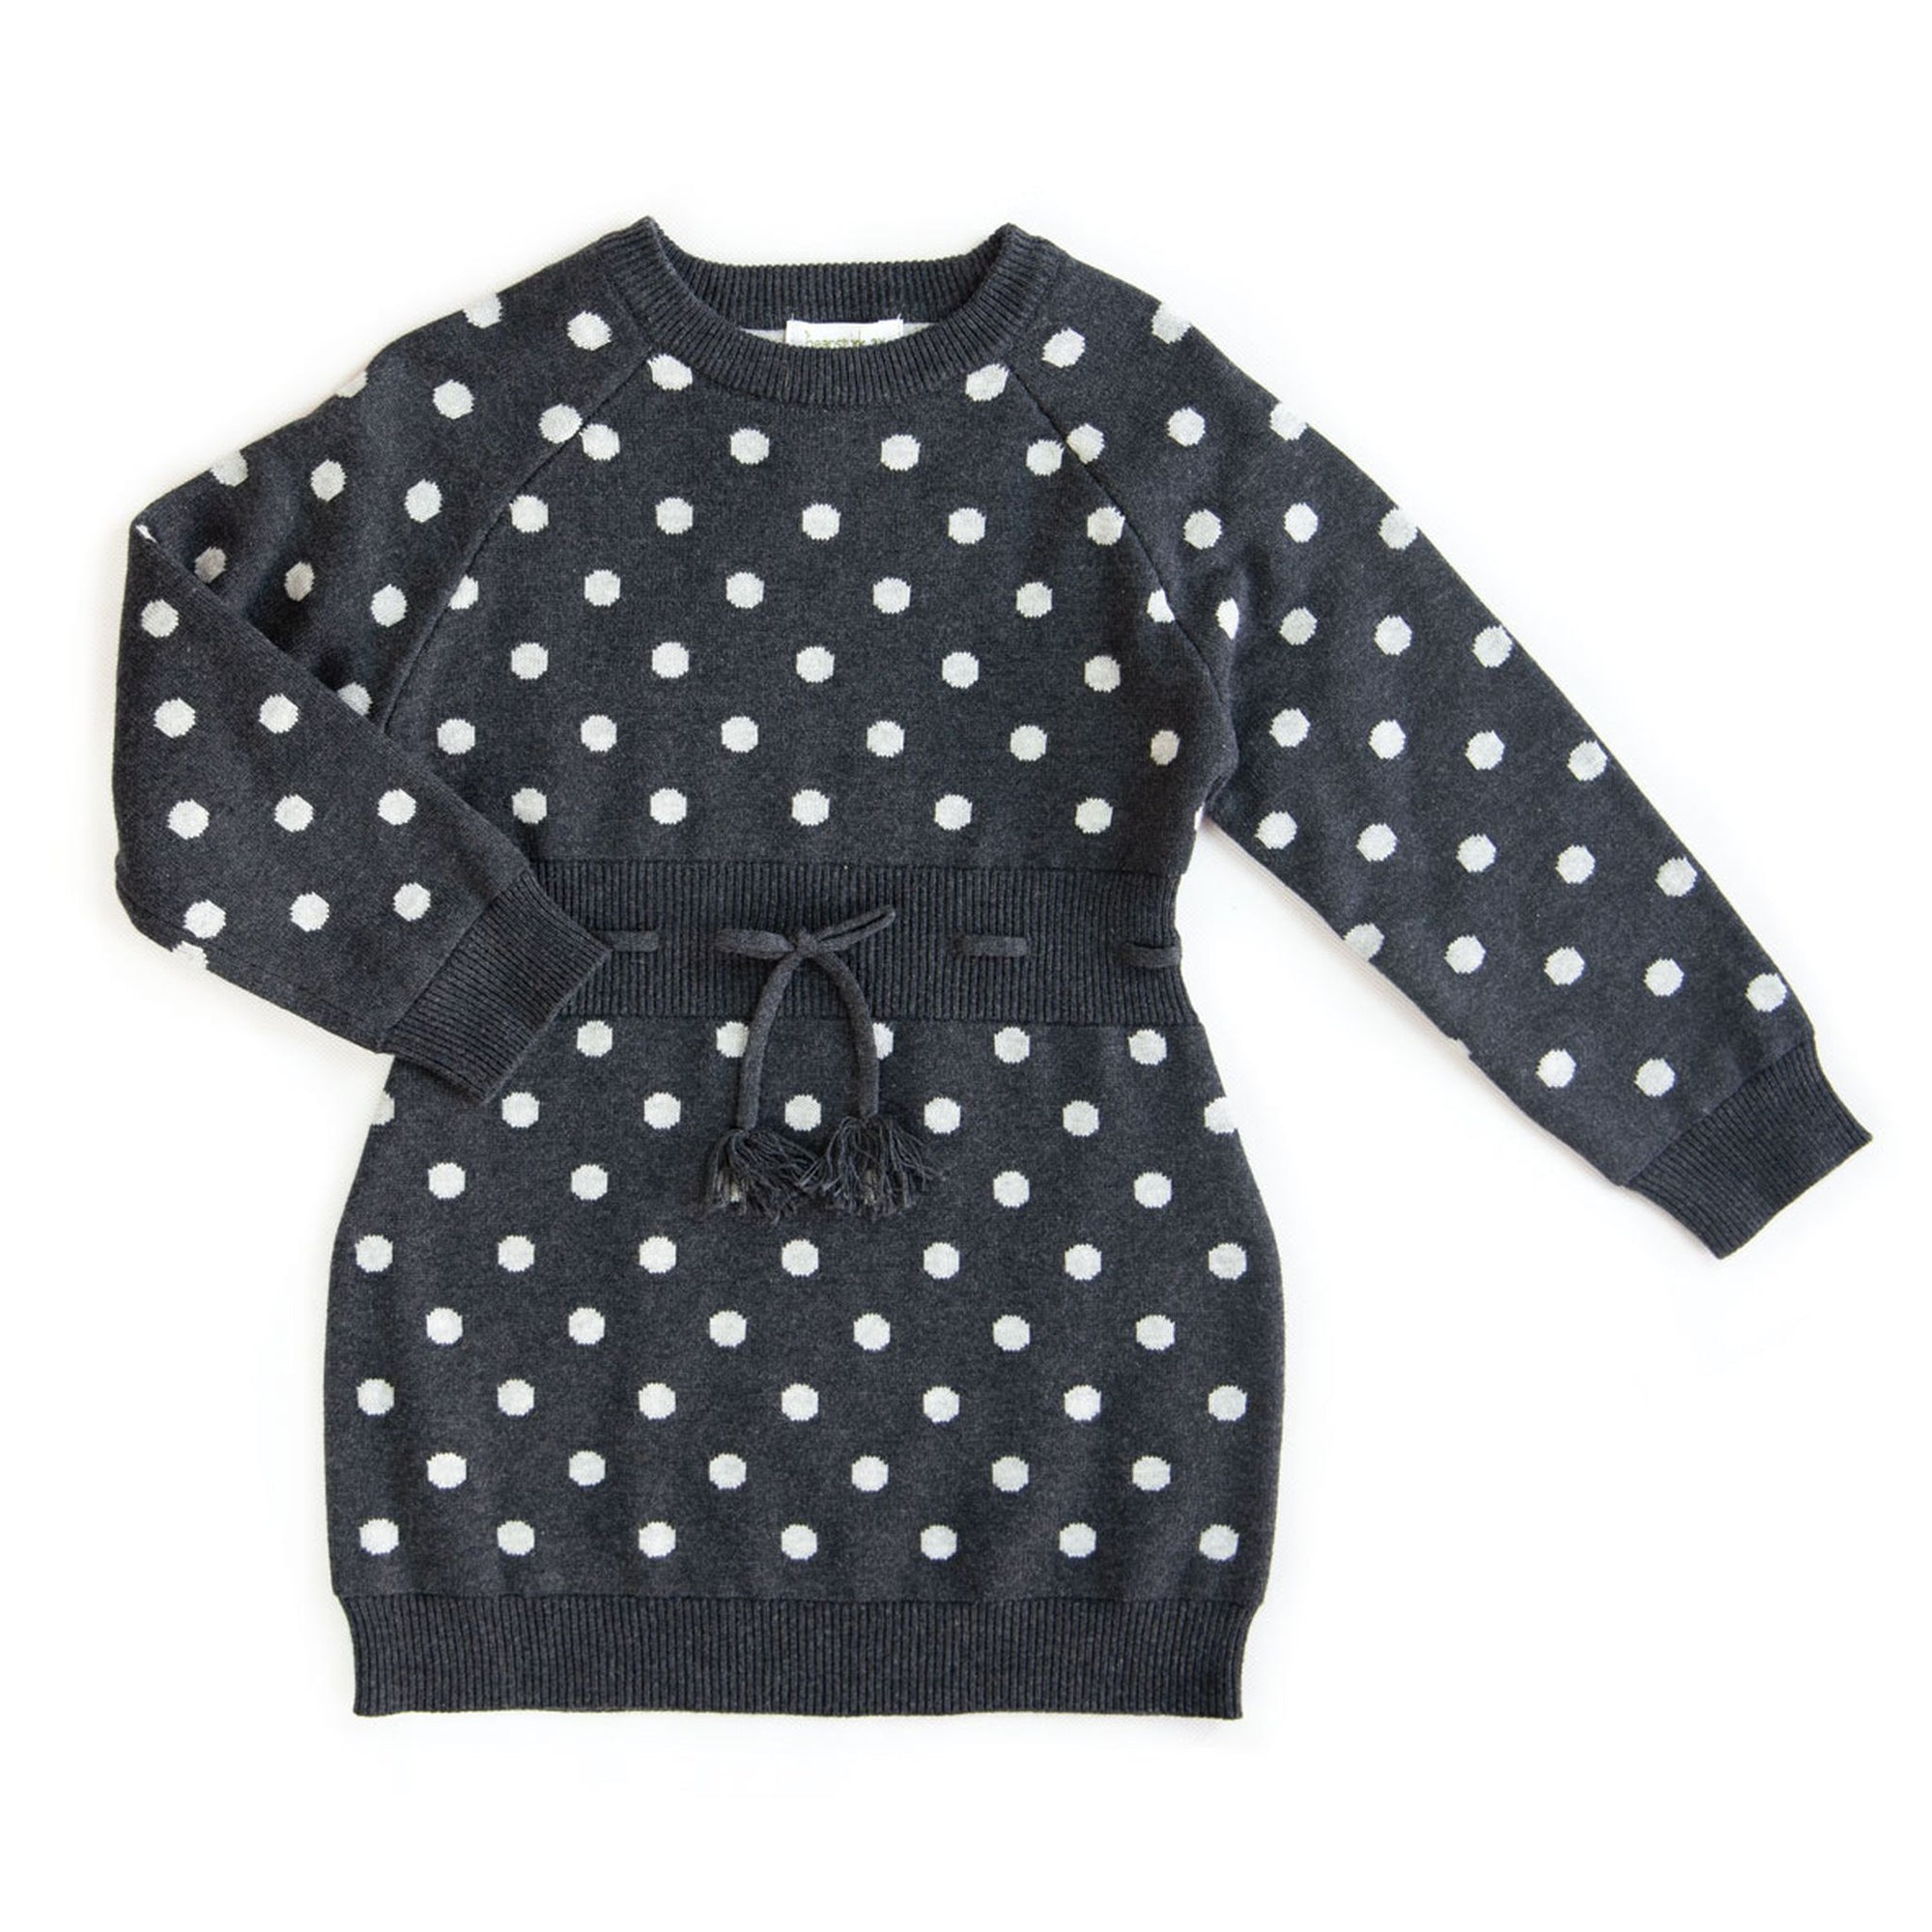 BEANSTORK - Spot Rib Dress Charcoal Marle